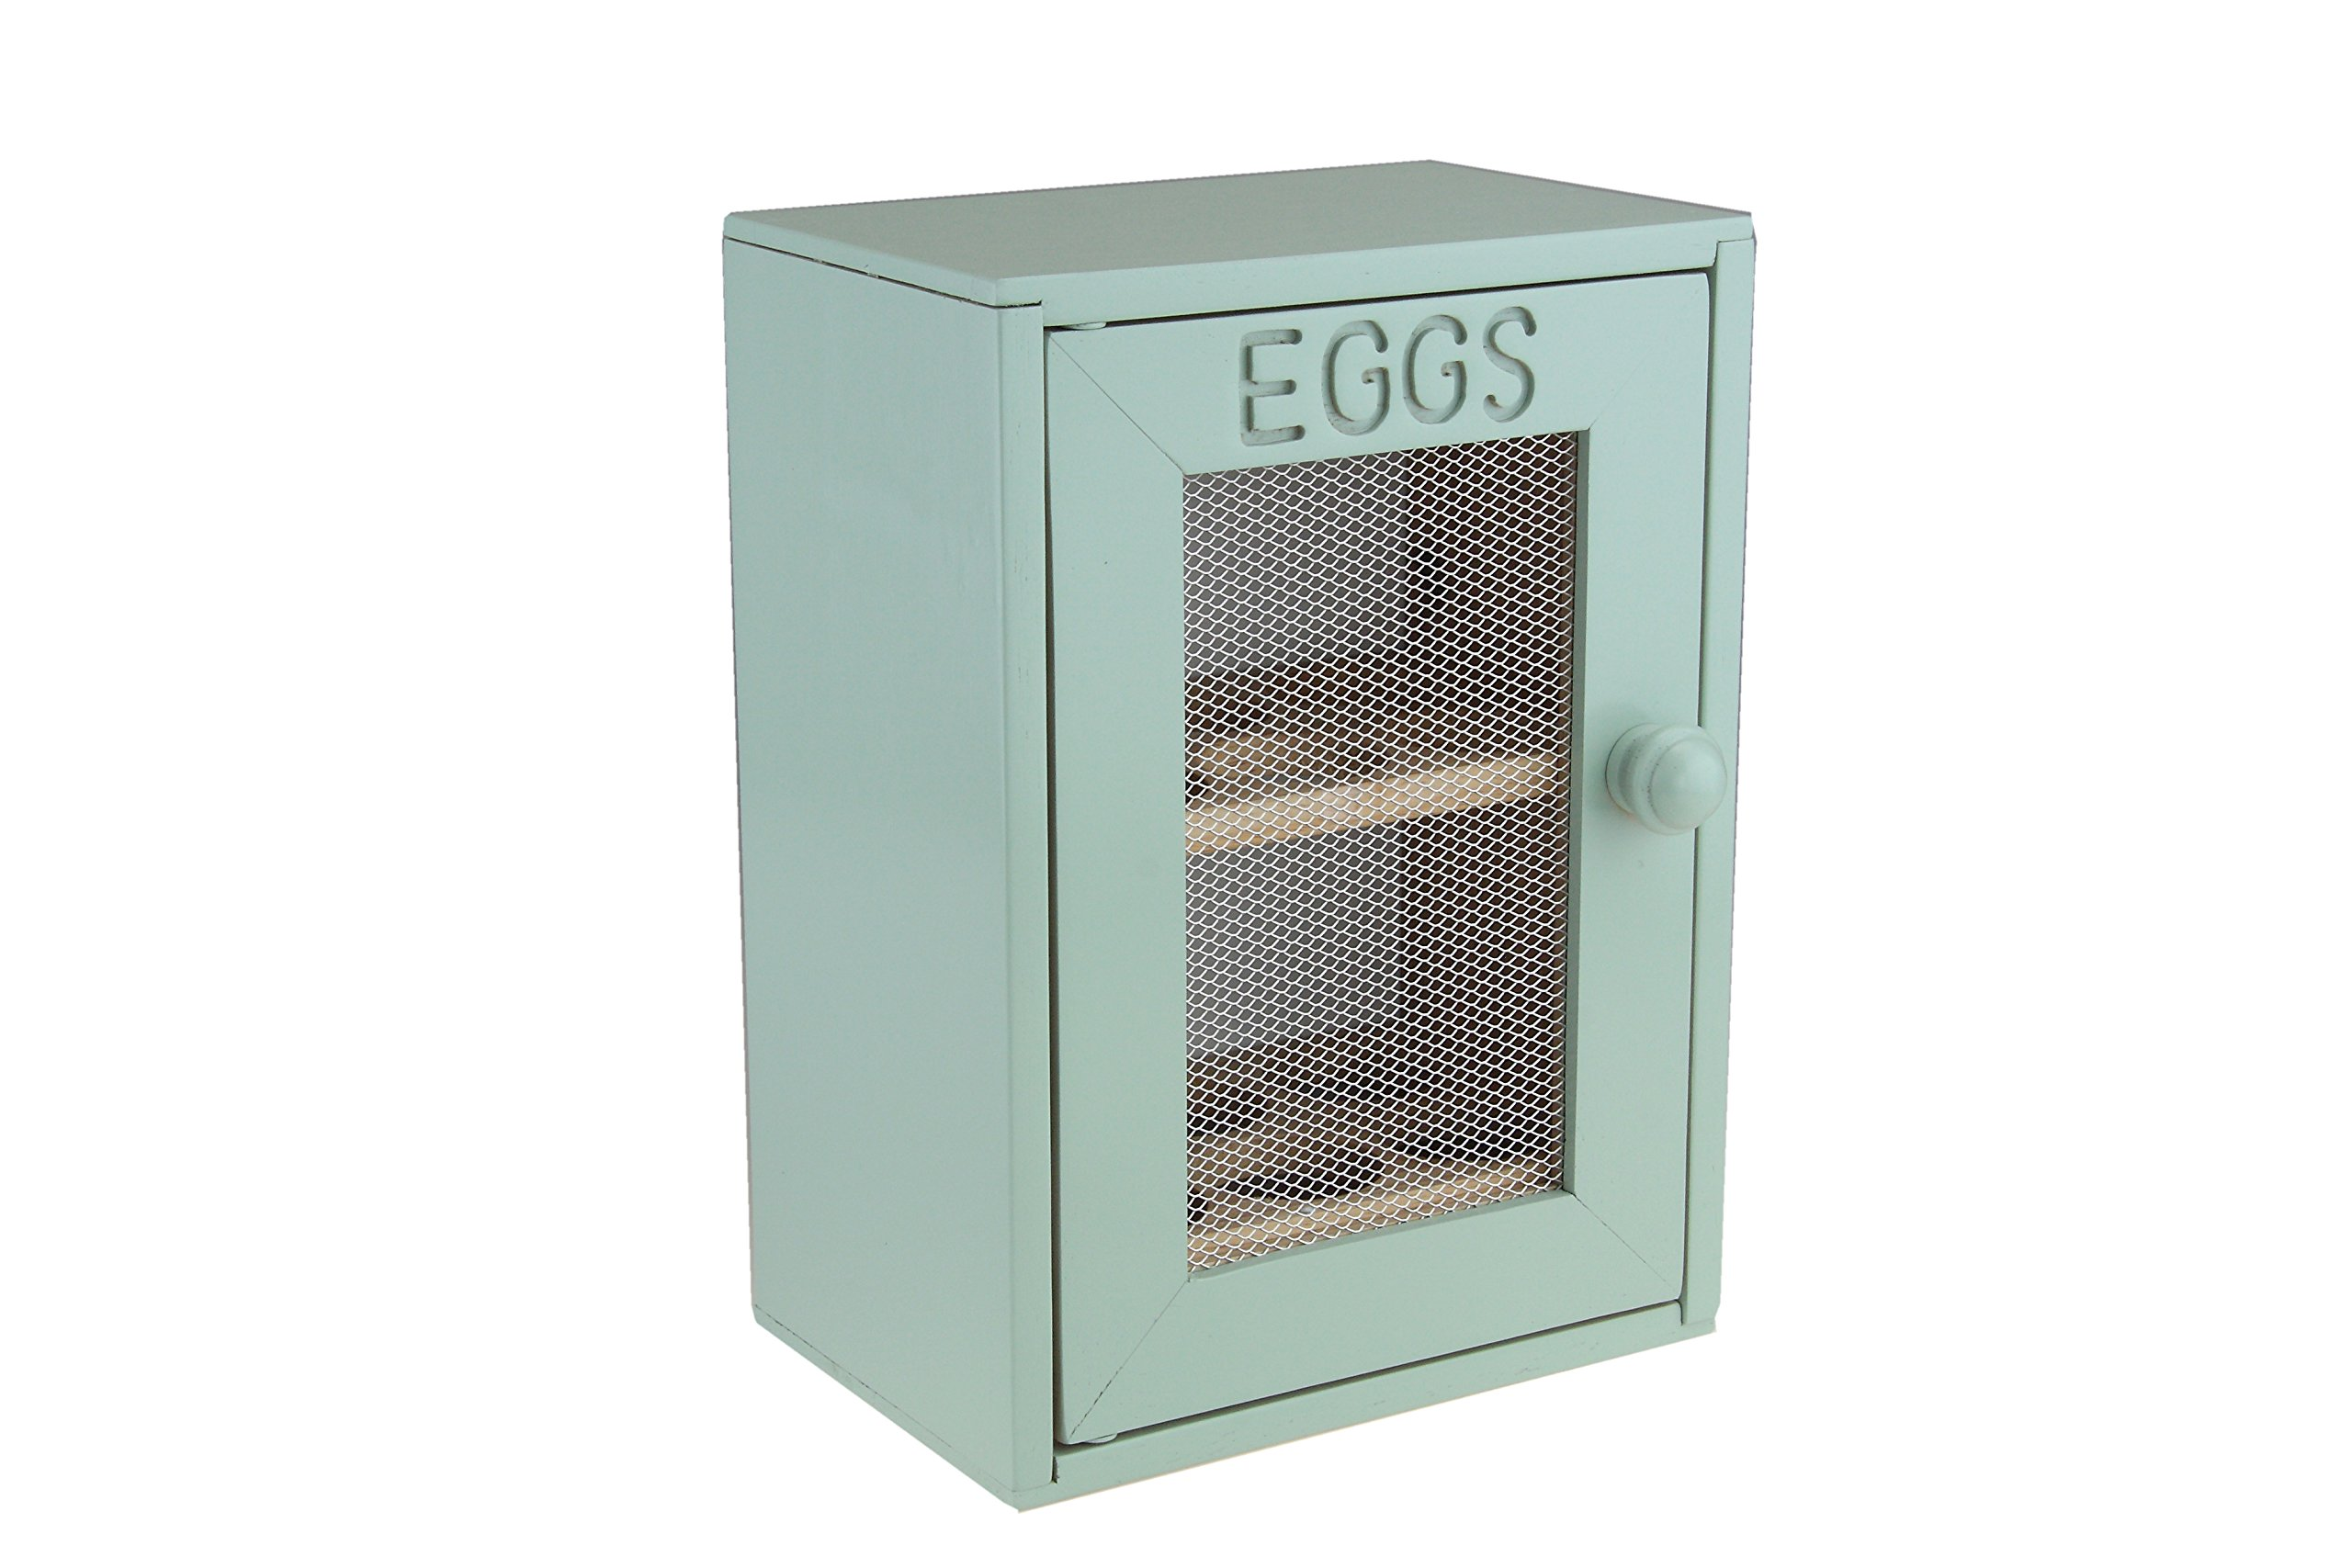 Apollo Wood Egg Cabinet, Mint/Green